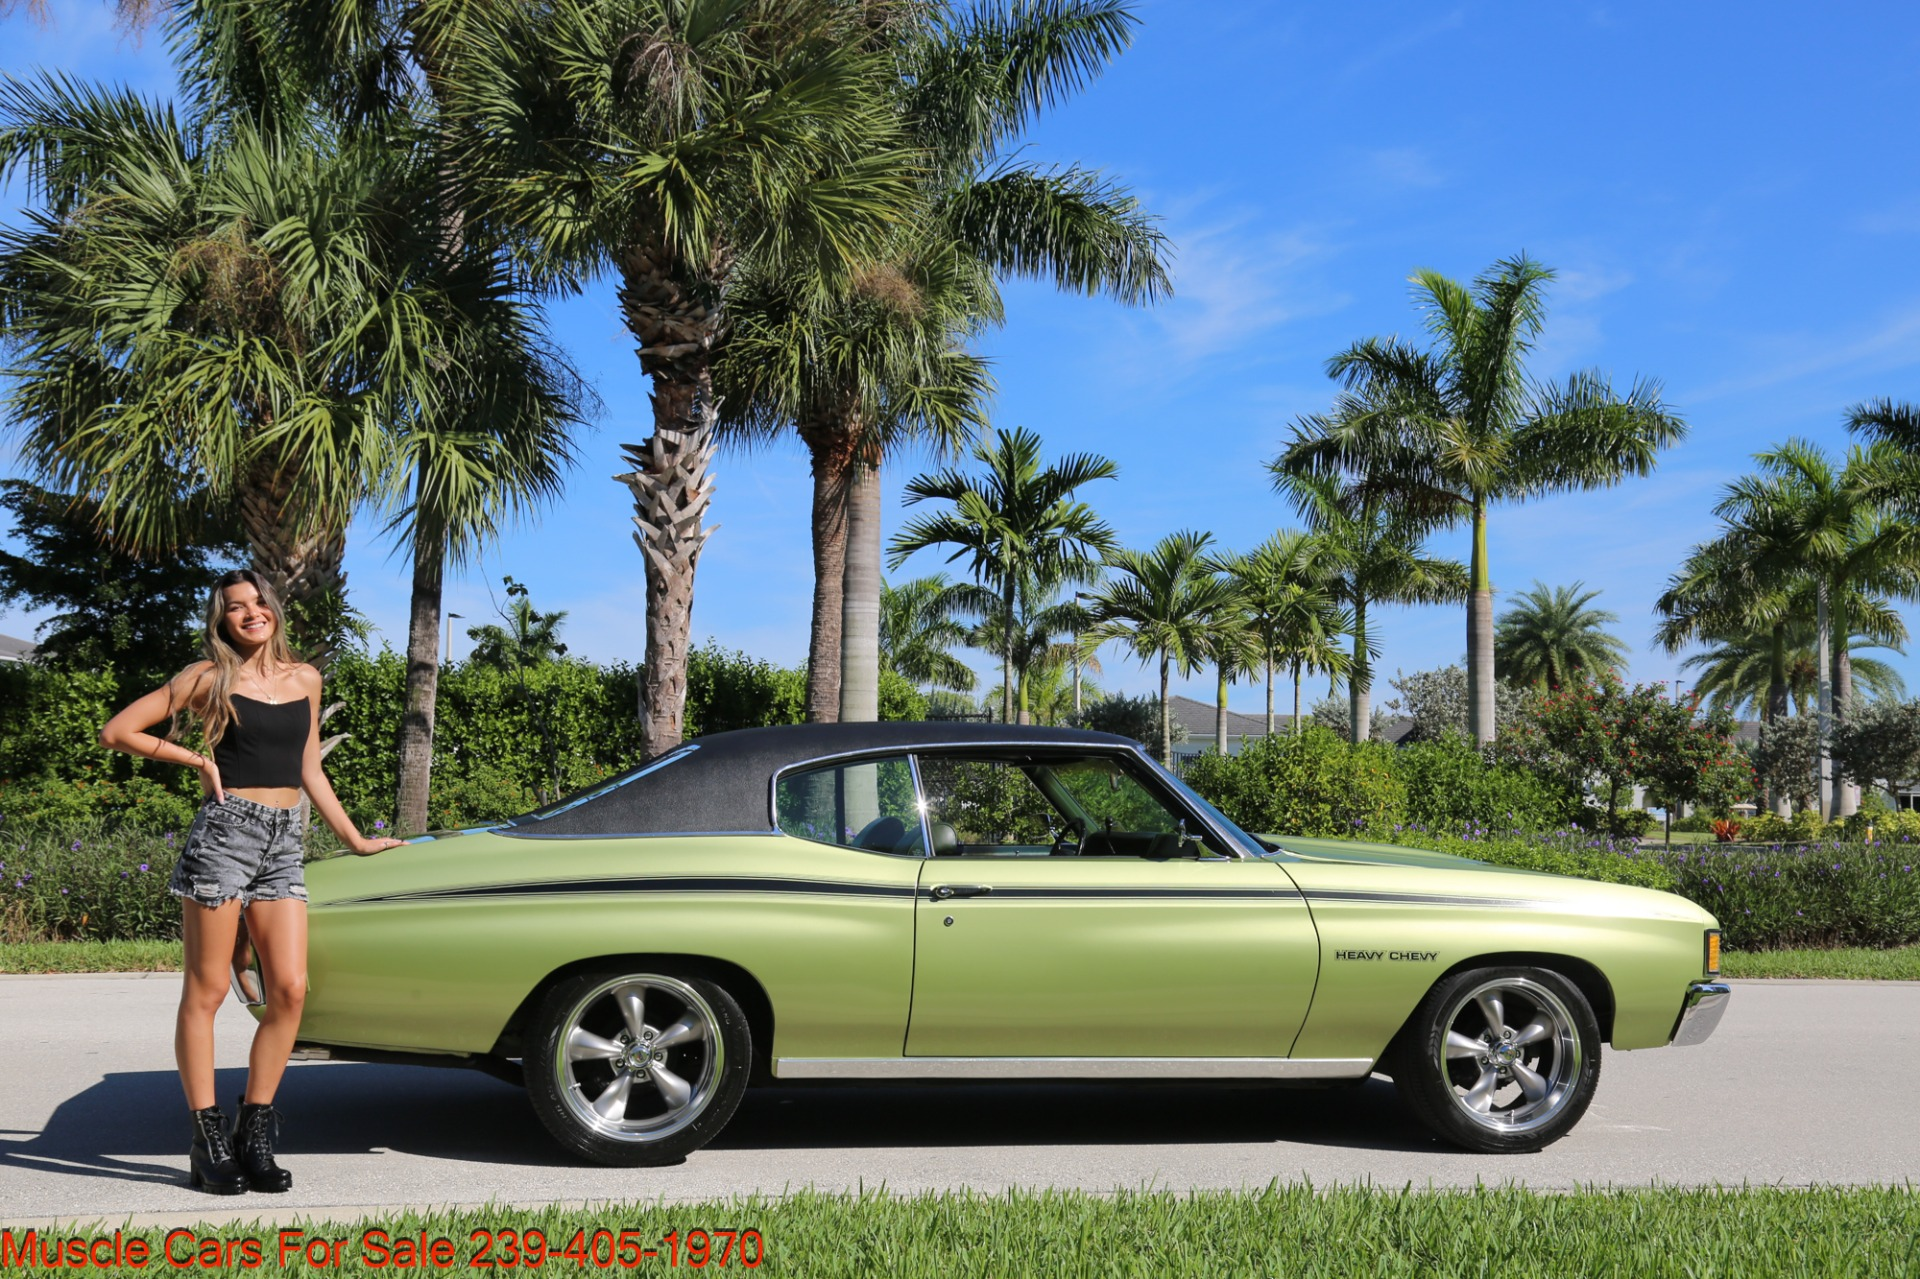 Used 1972 Chevrolet Chevelle Heavy Chevy Trim for sale $34,000 at Muscle Cars for Sale Inc. in Fort Myers FL 33912 6